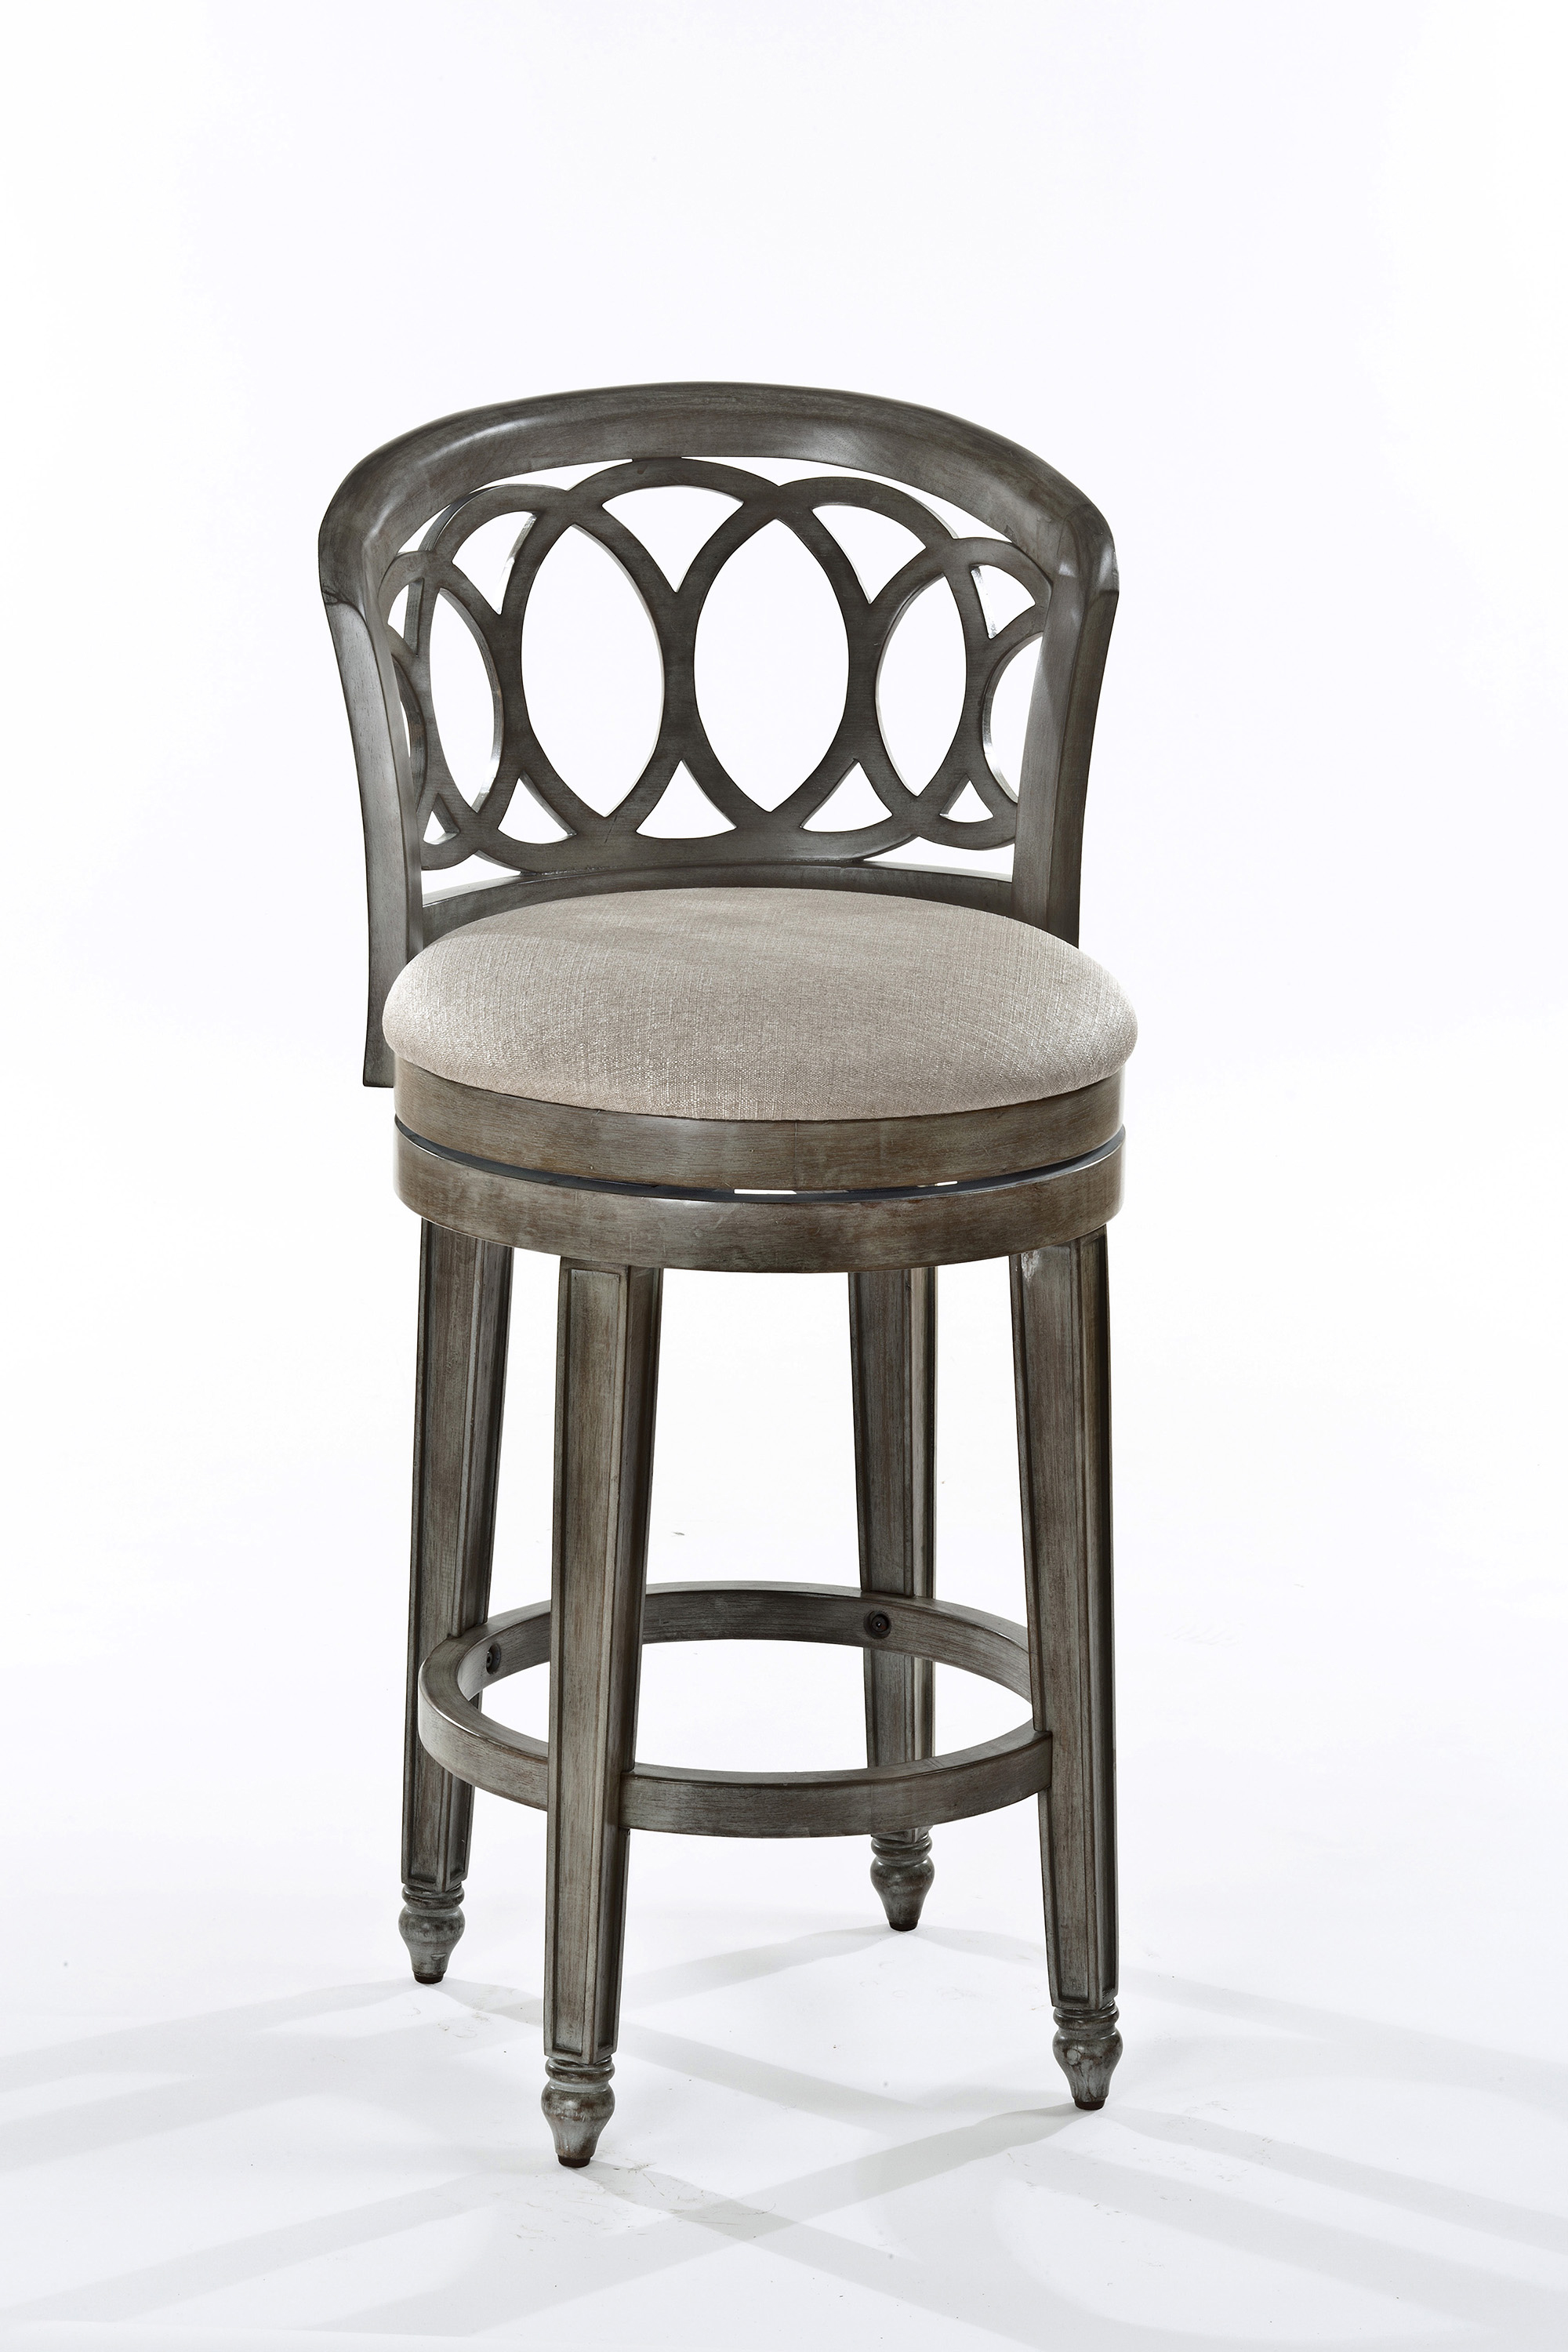 Wood Stools Adelyn Swivel Counter Stool by Hillsdale at Crowley Furniture & Mattress